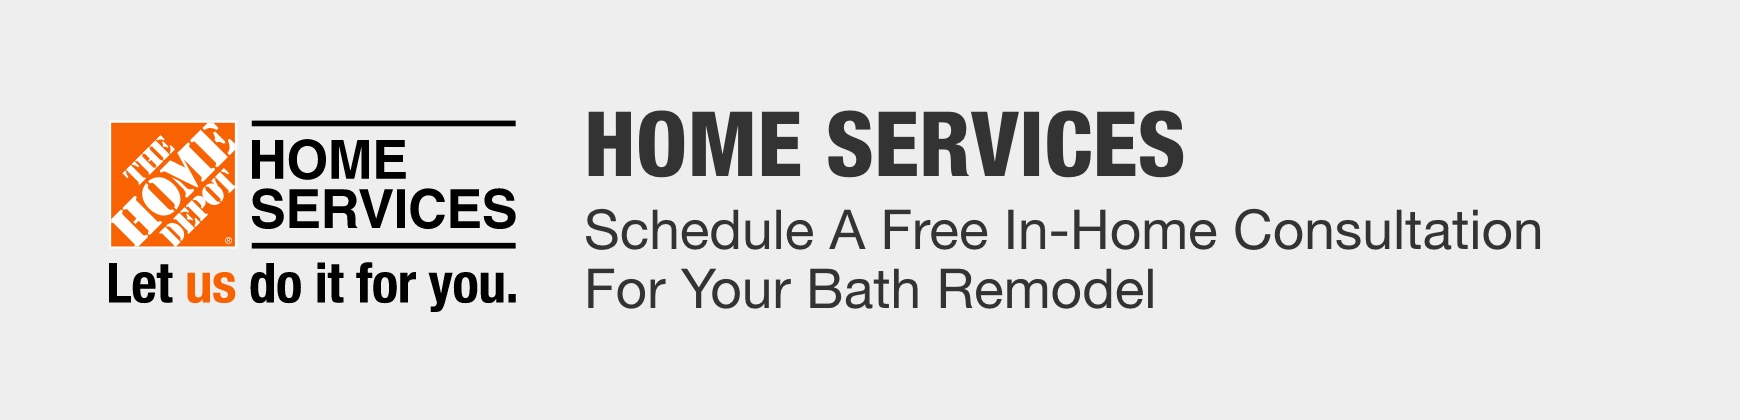 Schedule A Free In-Home Consultation For Your Bath Remodel